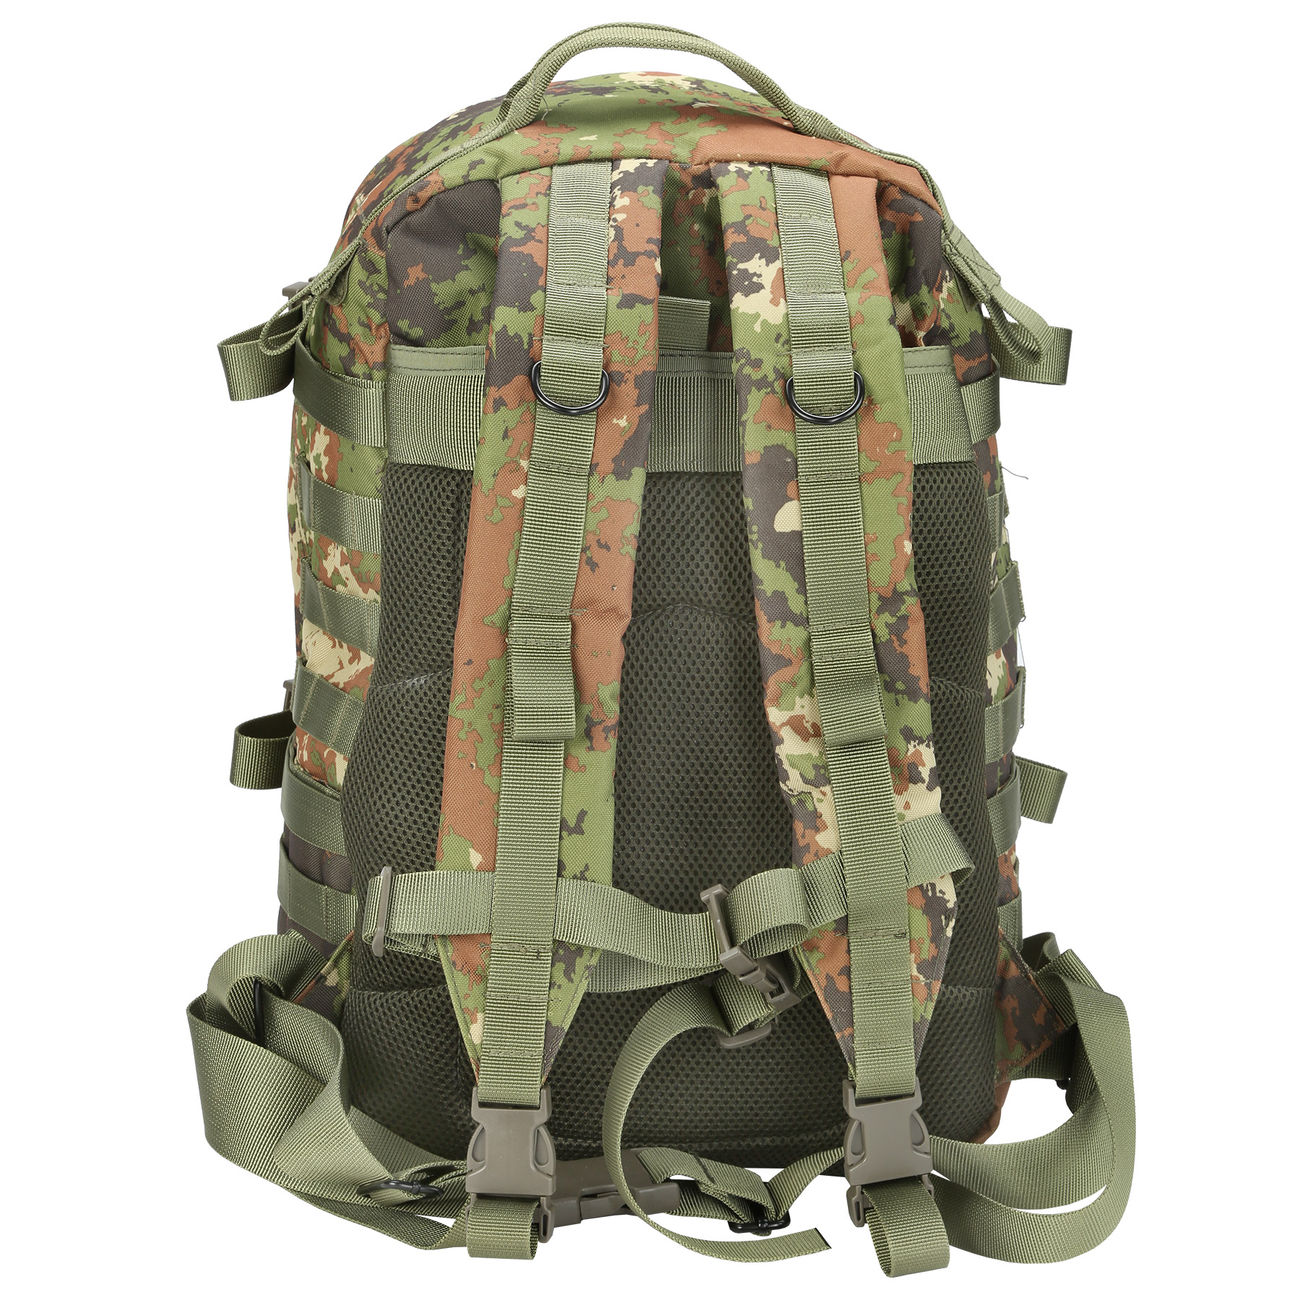 MFH Rucksack US Assault II vegetato 7